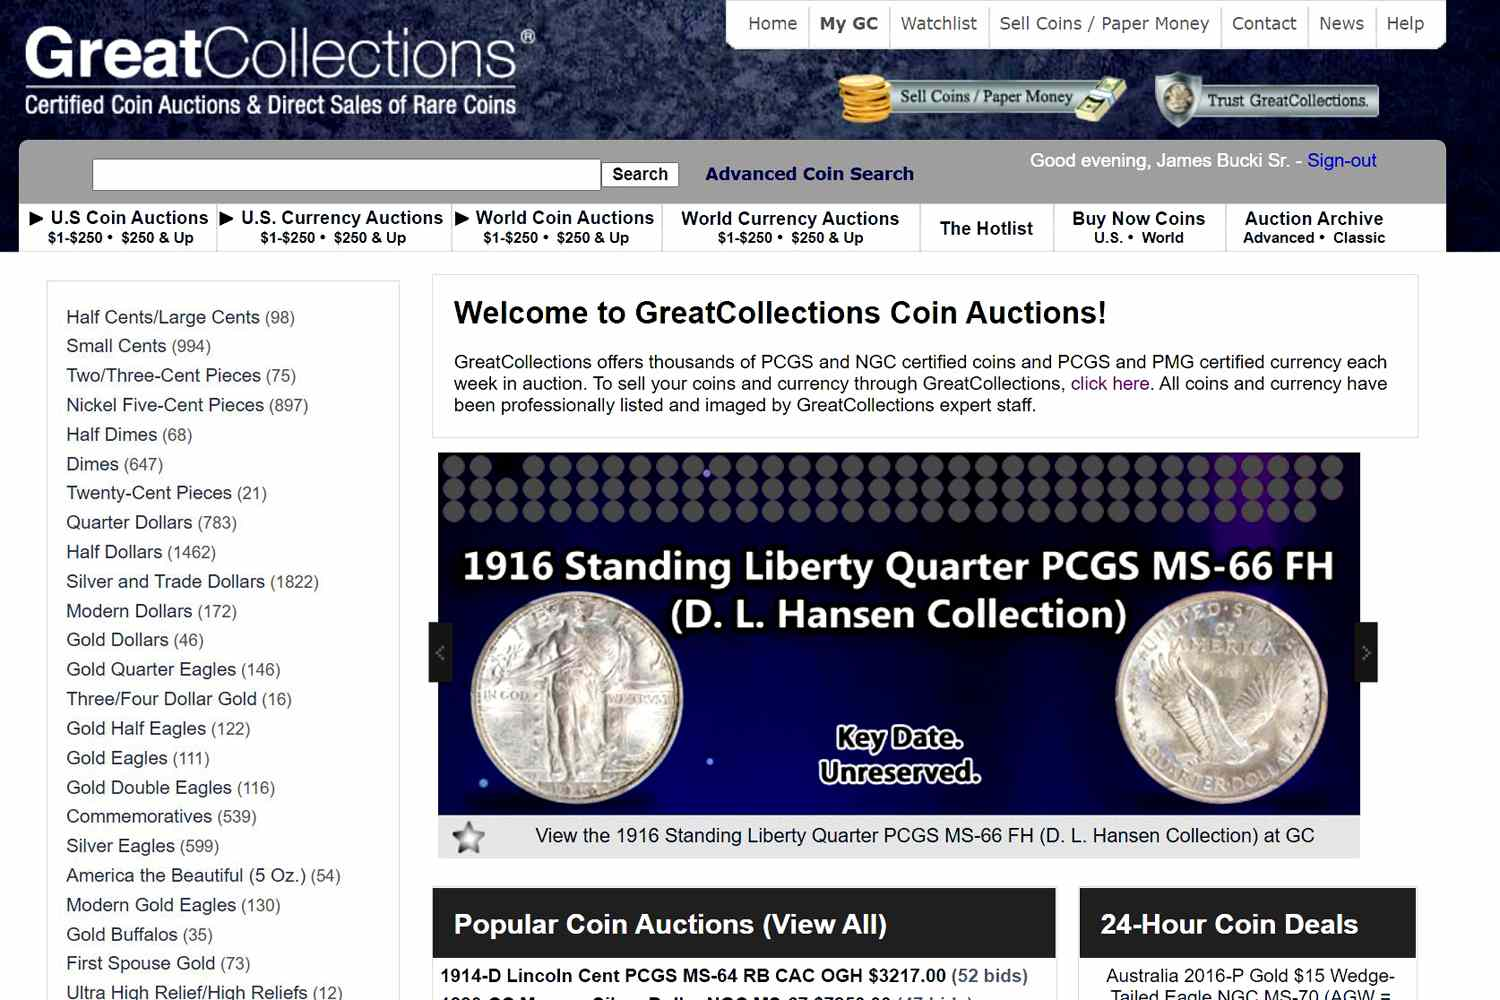 an example of the great collections website